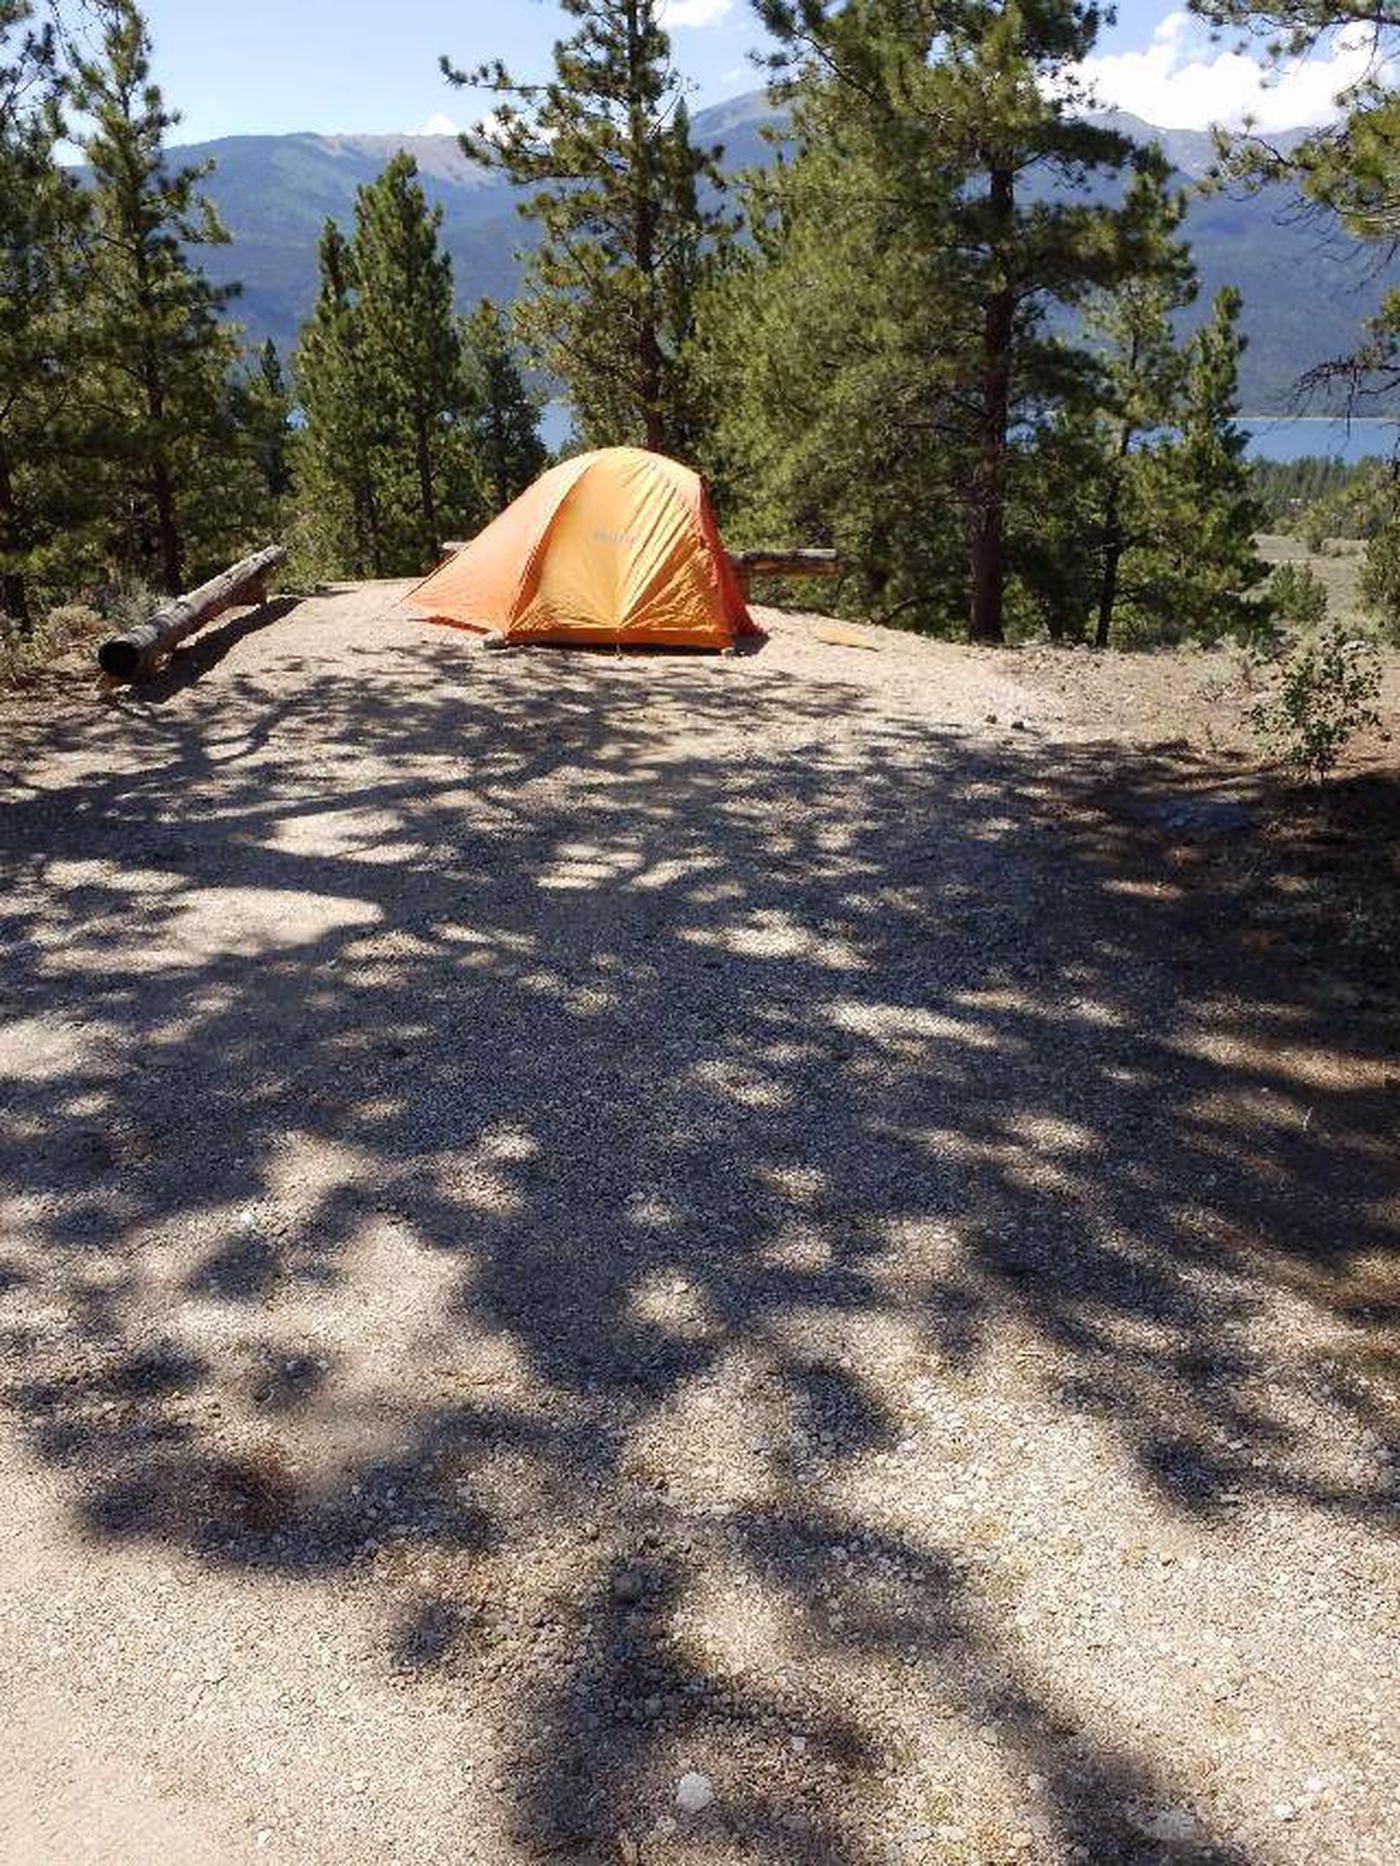 Lakeview Campground, site E1 camping spot with parking